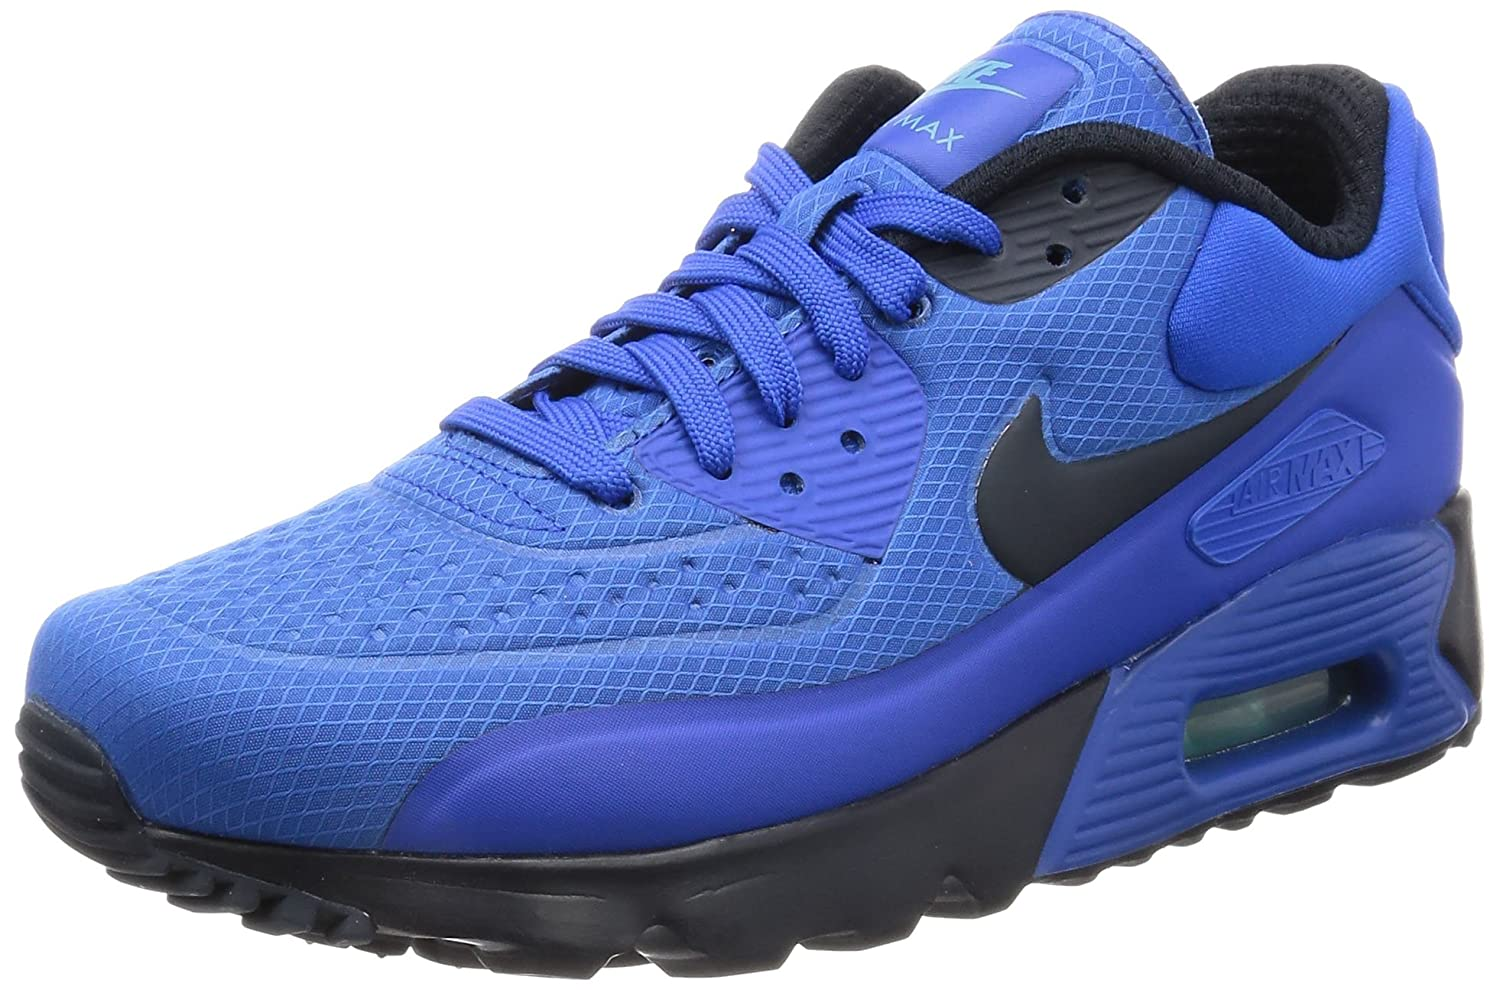 090d948f1d254 Nike Air Max 90 Ultra SE Men Lifestyle Casual Sneakers New Hyper Cobalt - 10